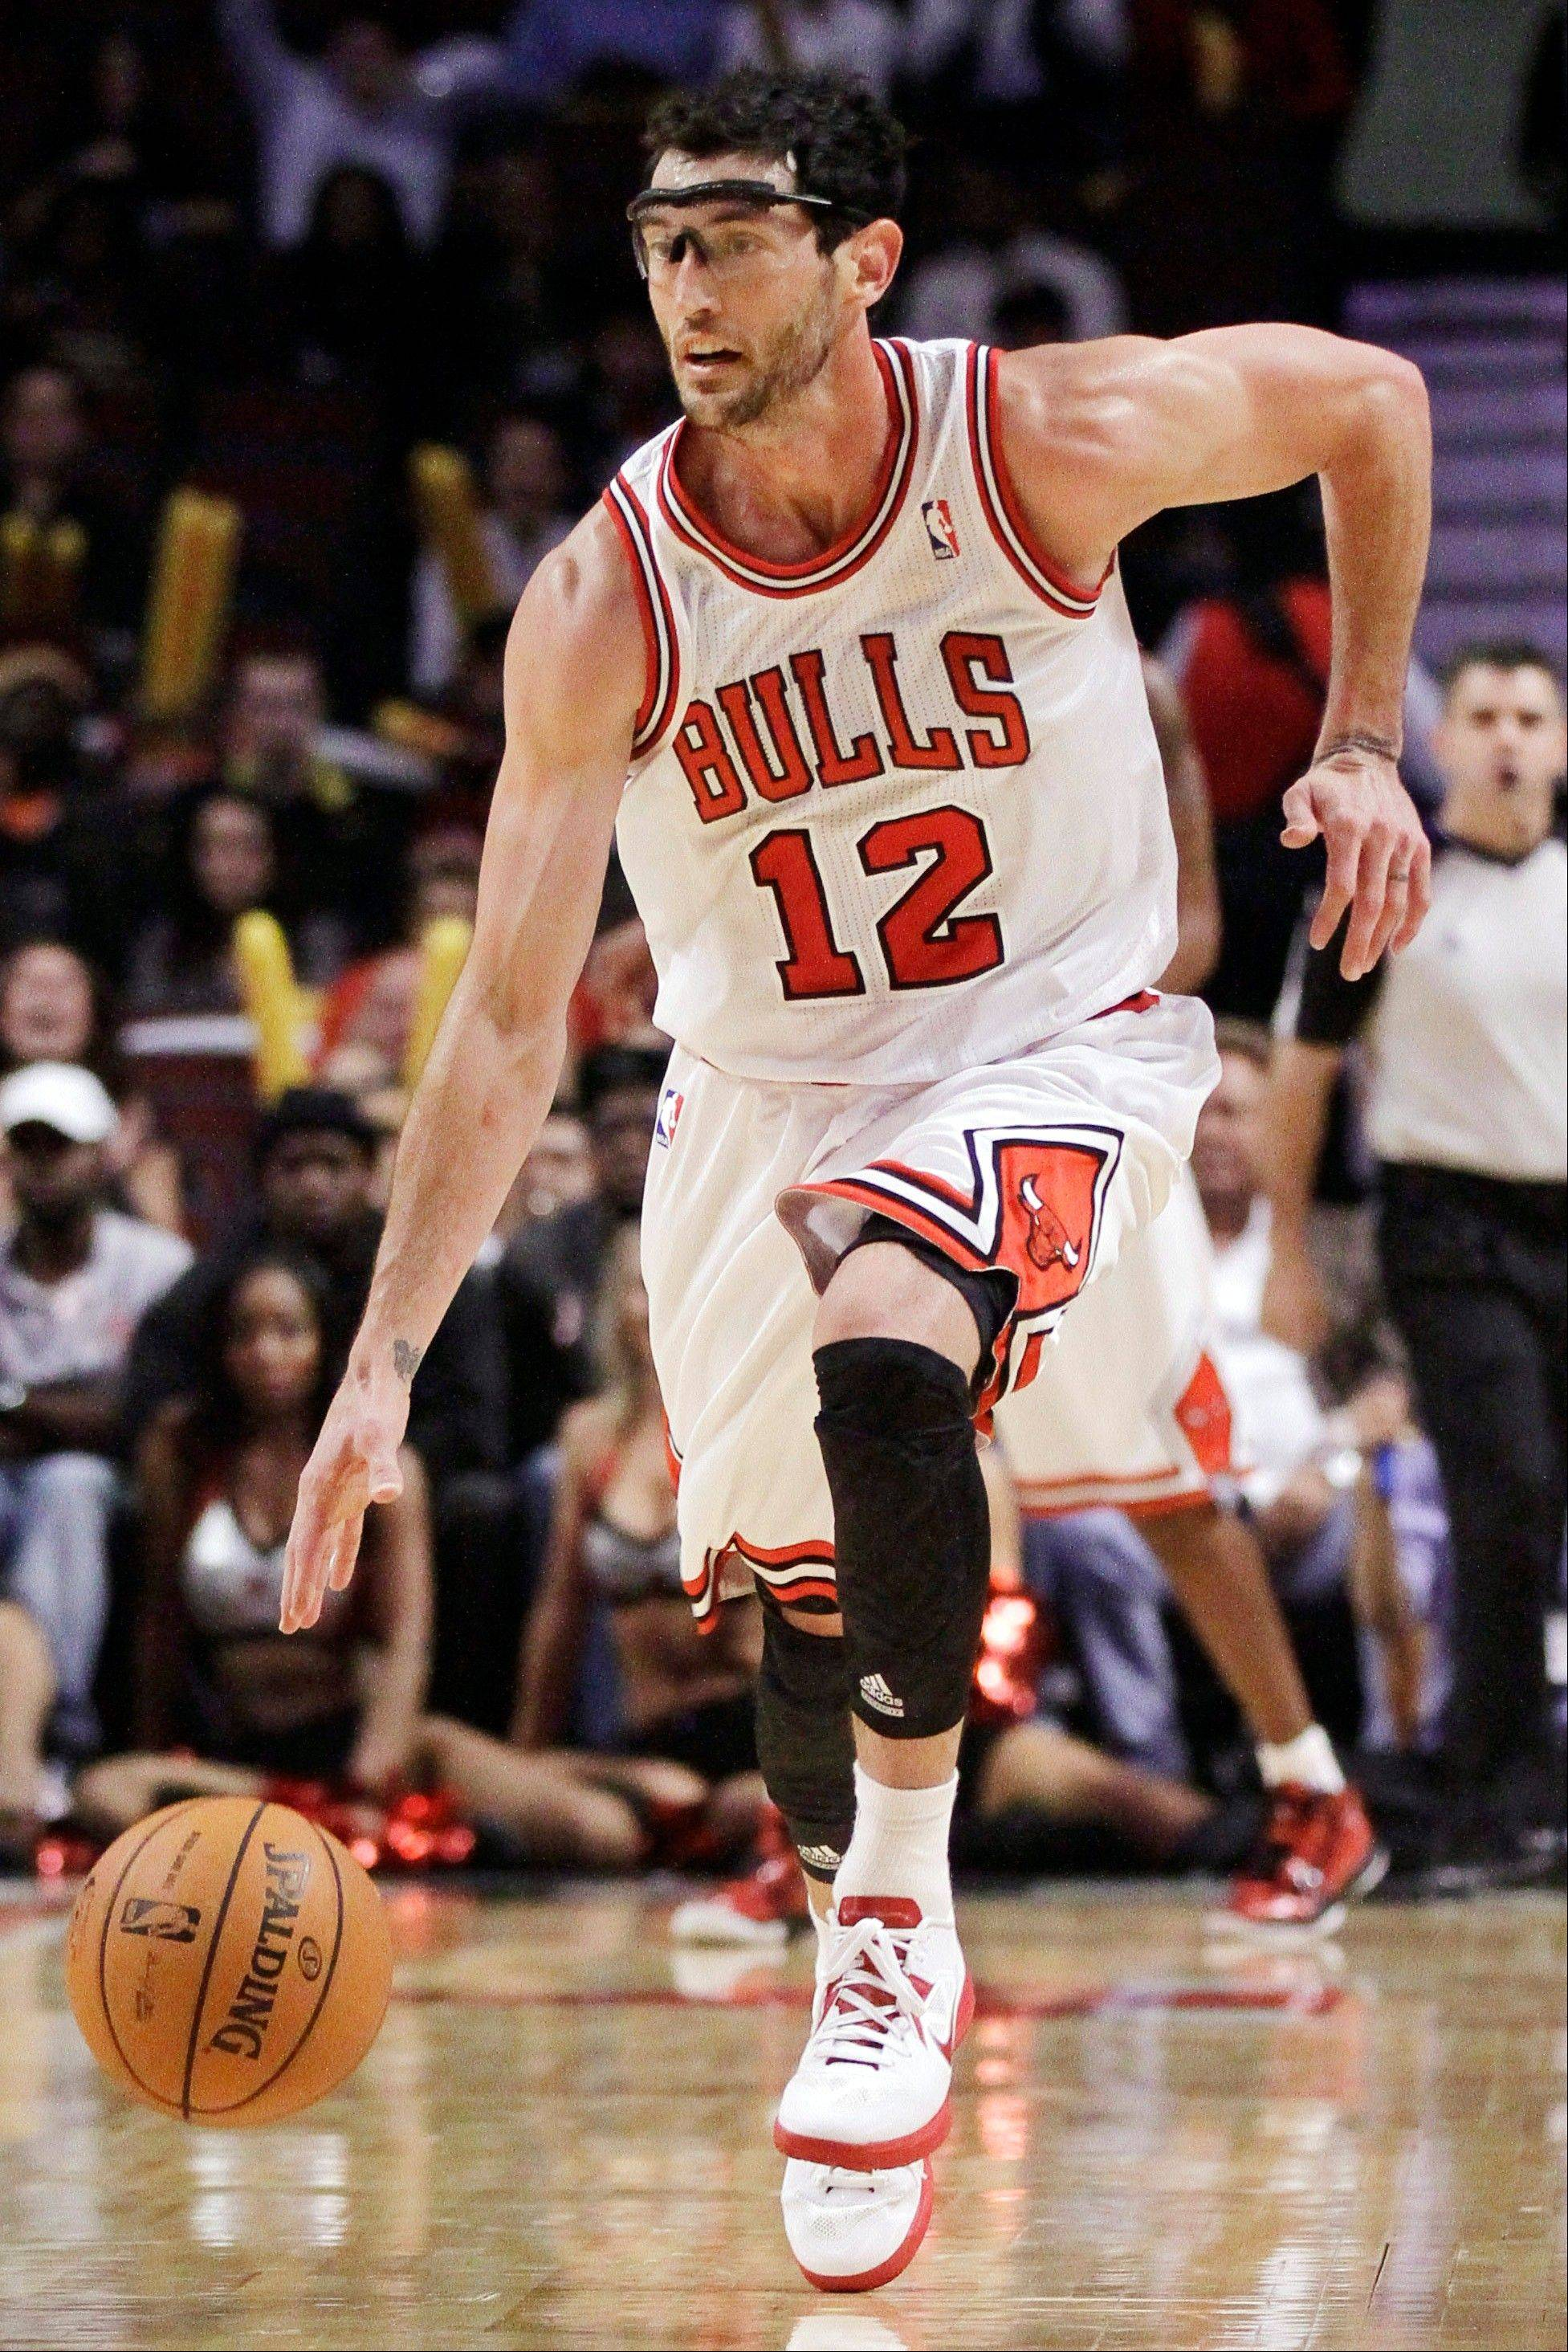 Bulls guard Kirk Hinrich brings the ball upcourt during the second half of a preseason NBA basketball game against the Memphis Grizzlies, Tuesday, Oct. 9, 2012, in Chicago. The Bulls won 92-88.